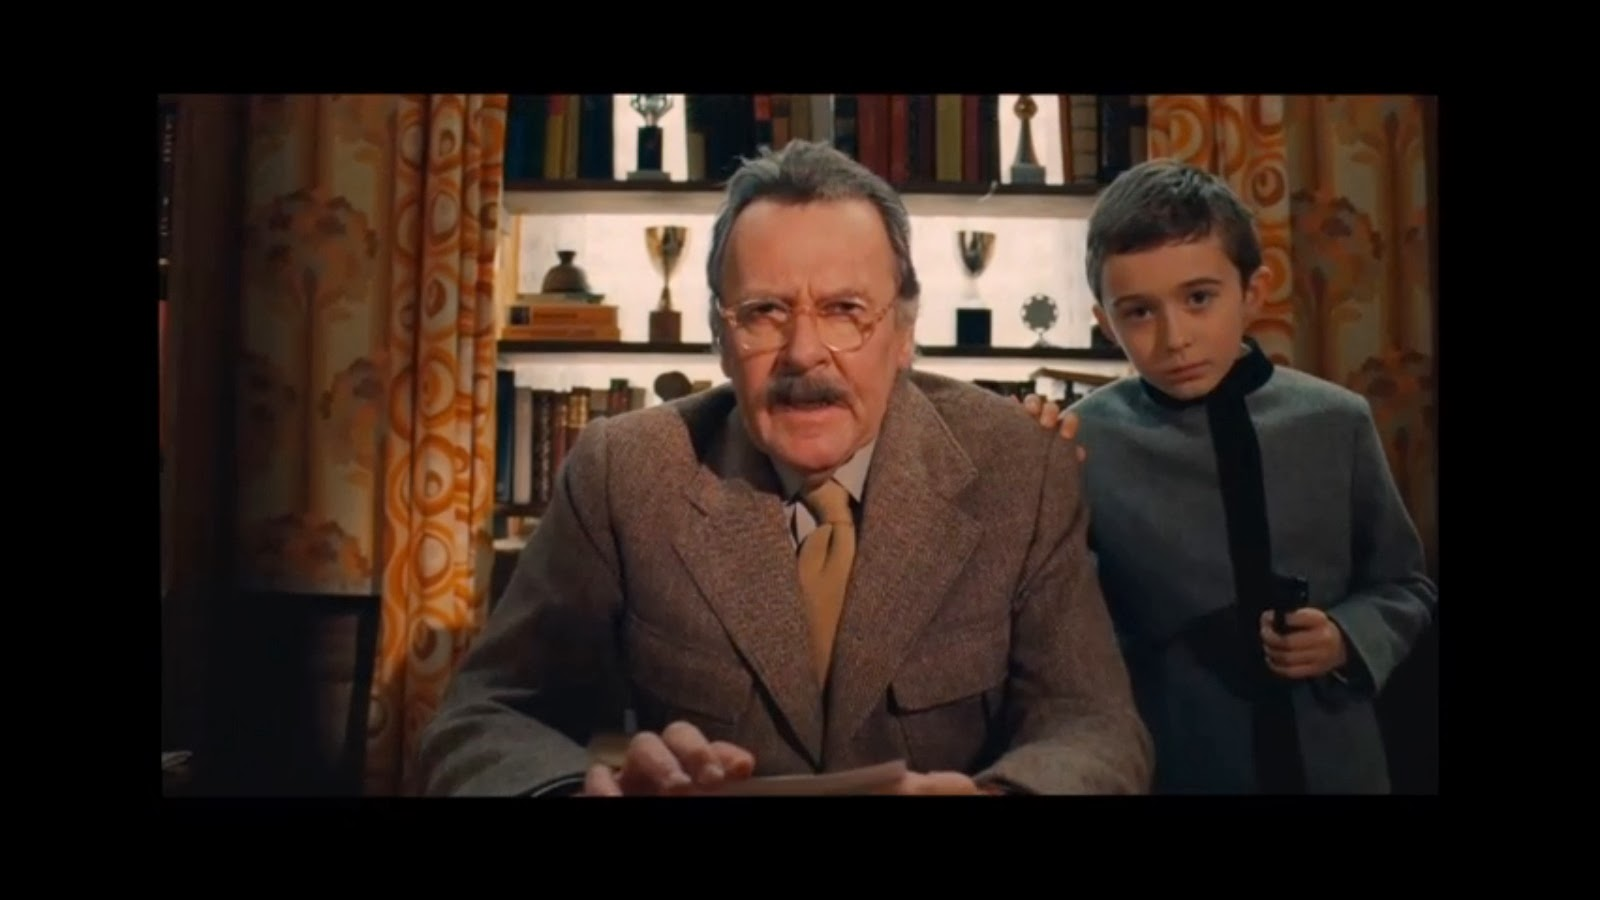 Tom Wilkinson only gets two minutes of screentime in 'The Grand Budapest Hotel,' but his lines speak volumes about Anderson's cinematic allure. (Fox Searchlight)